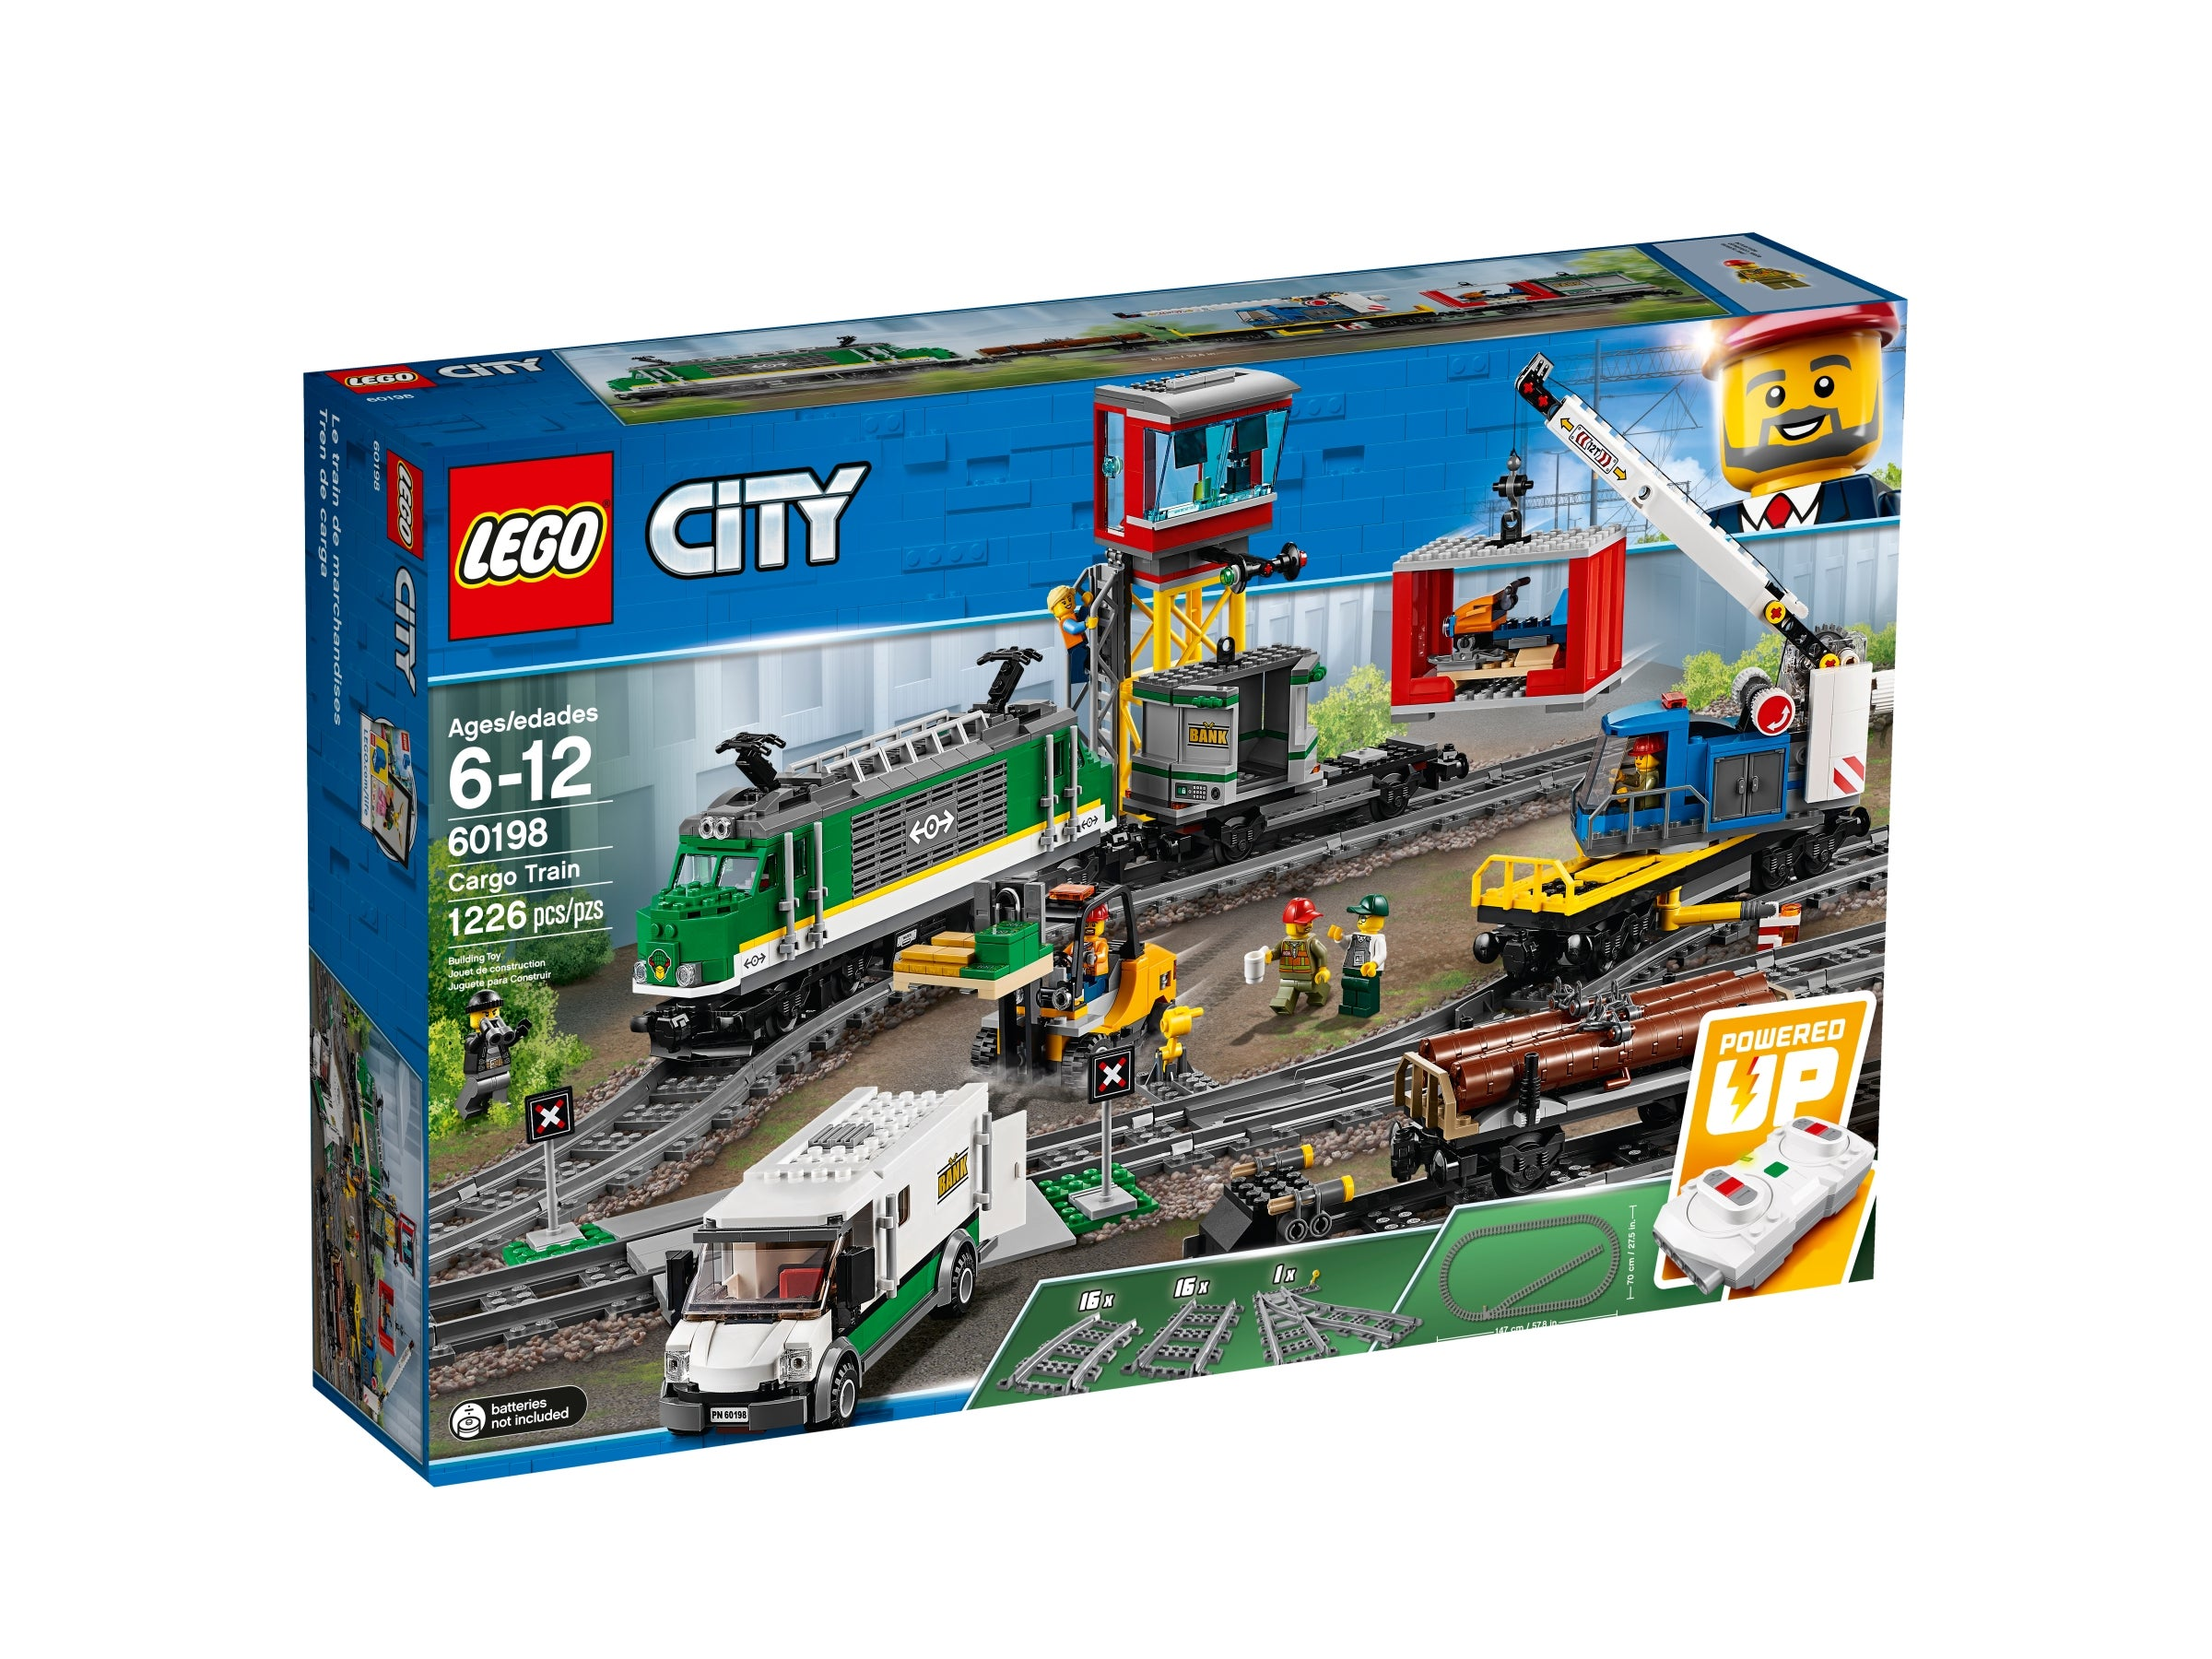 Building block toy. 10 x Curved City Train Tracks Compatible with Lego